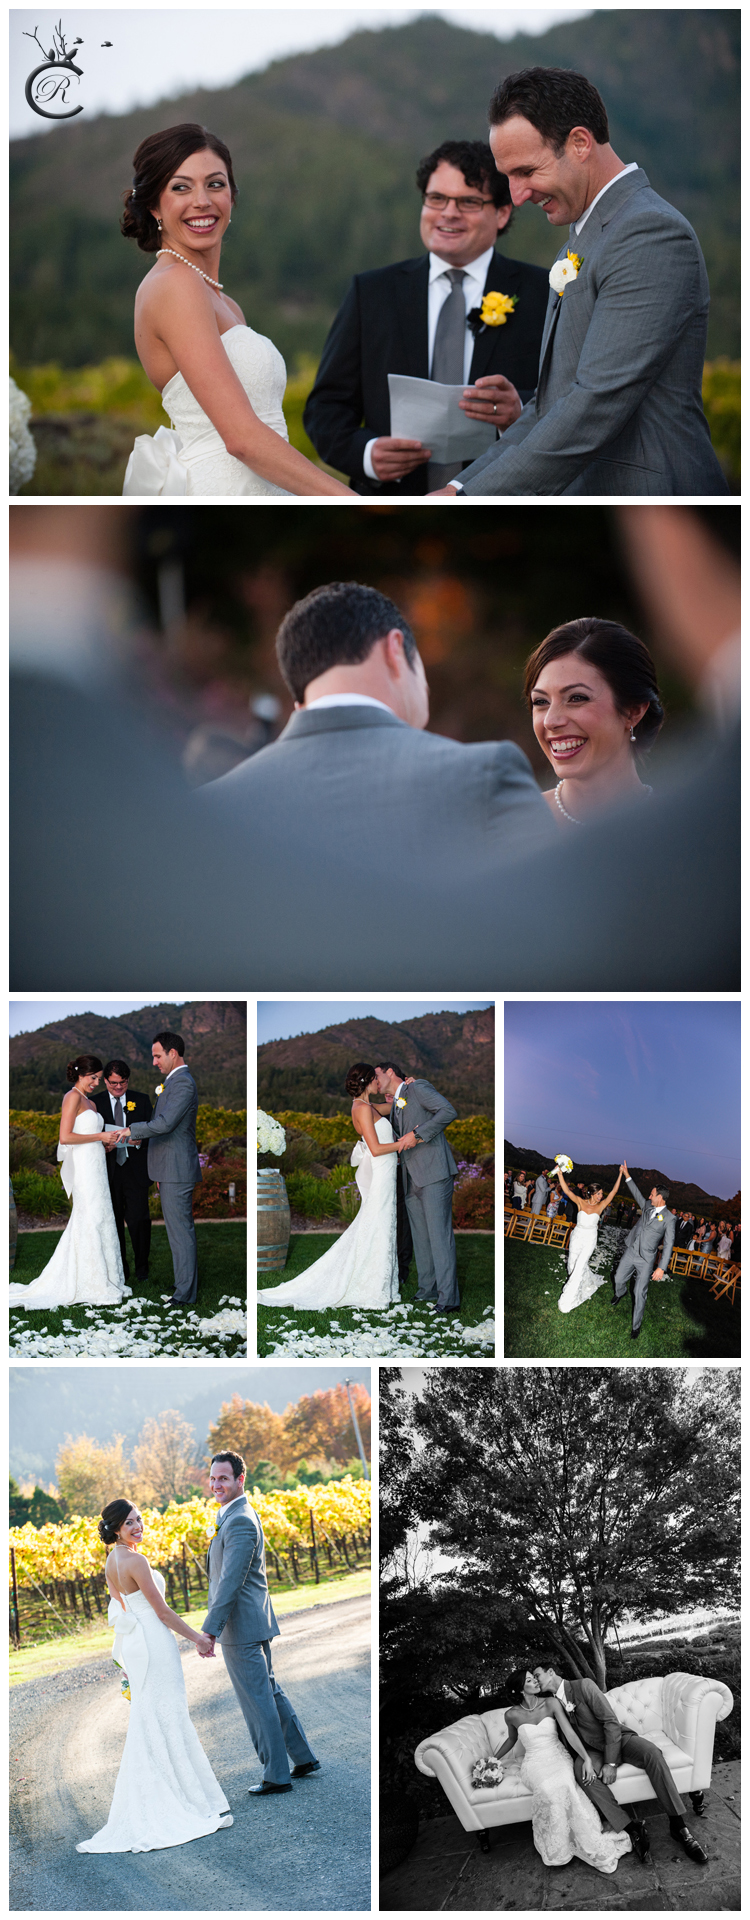 Outdoor ceremony at St. Francis Winery